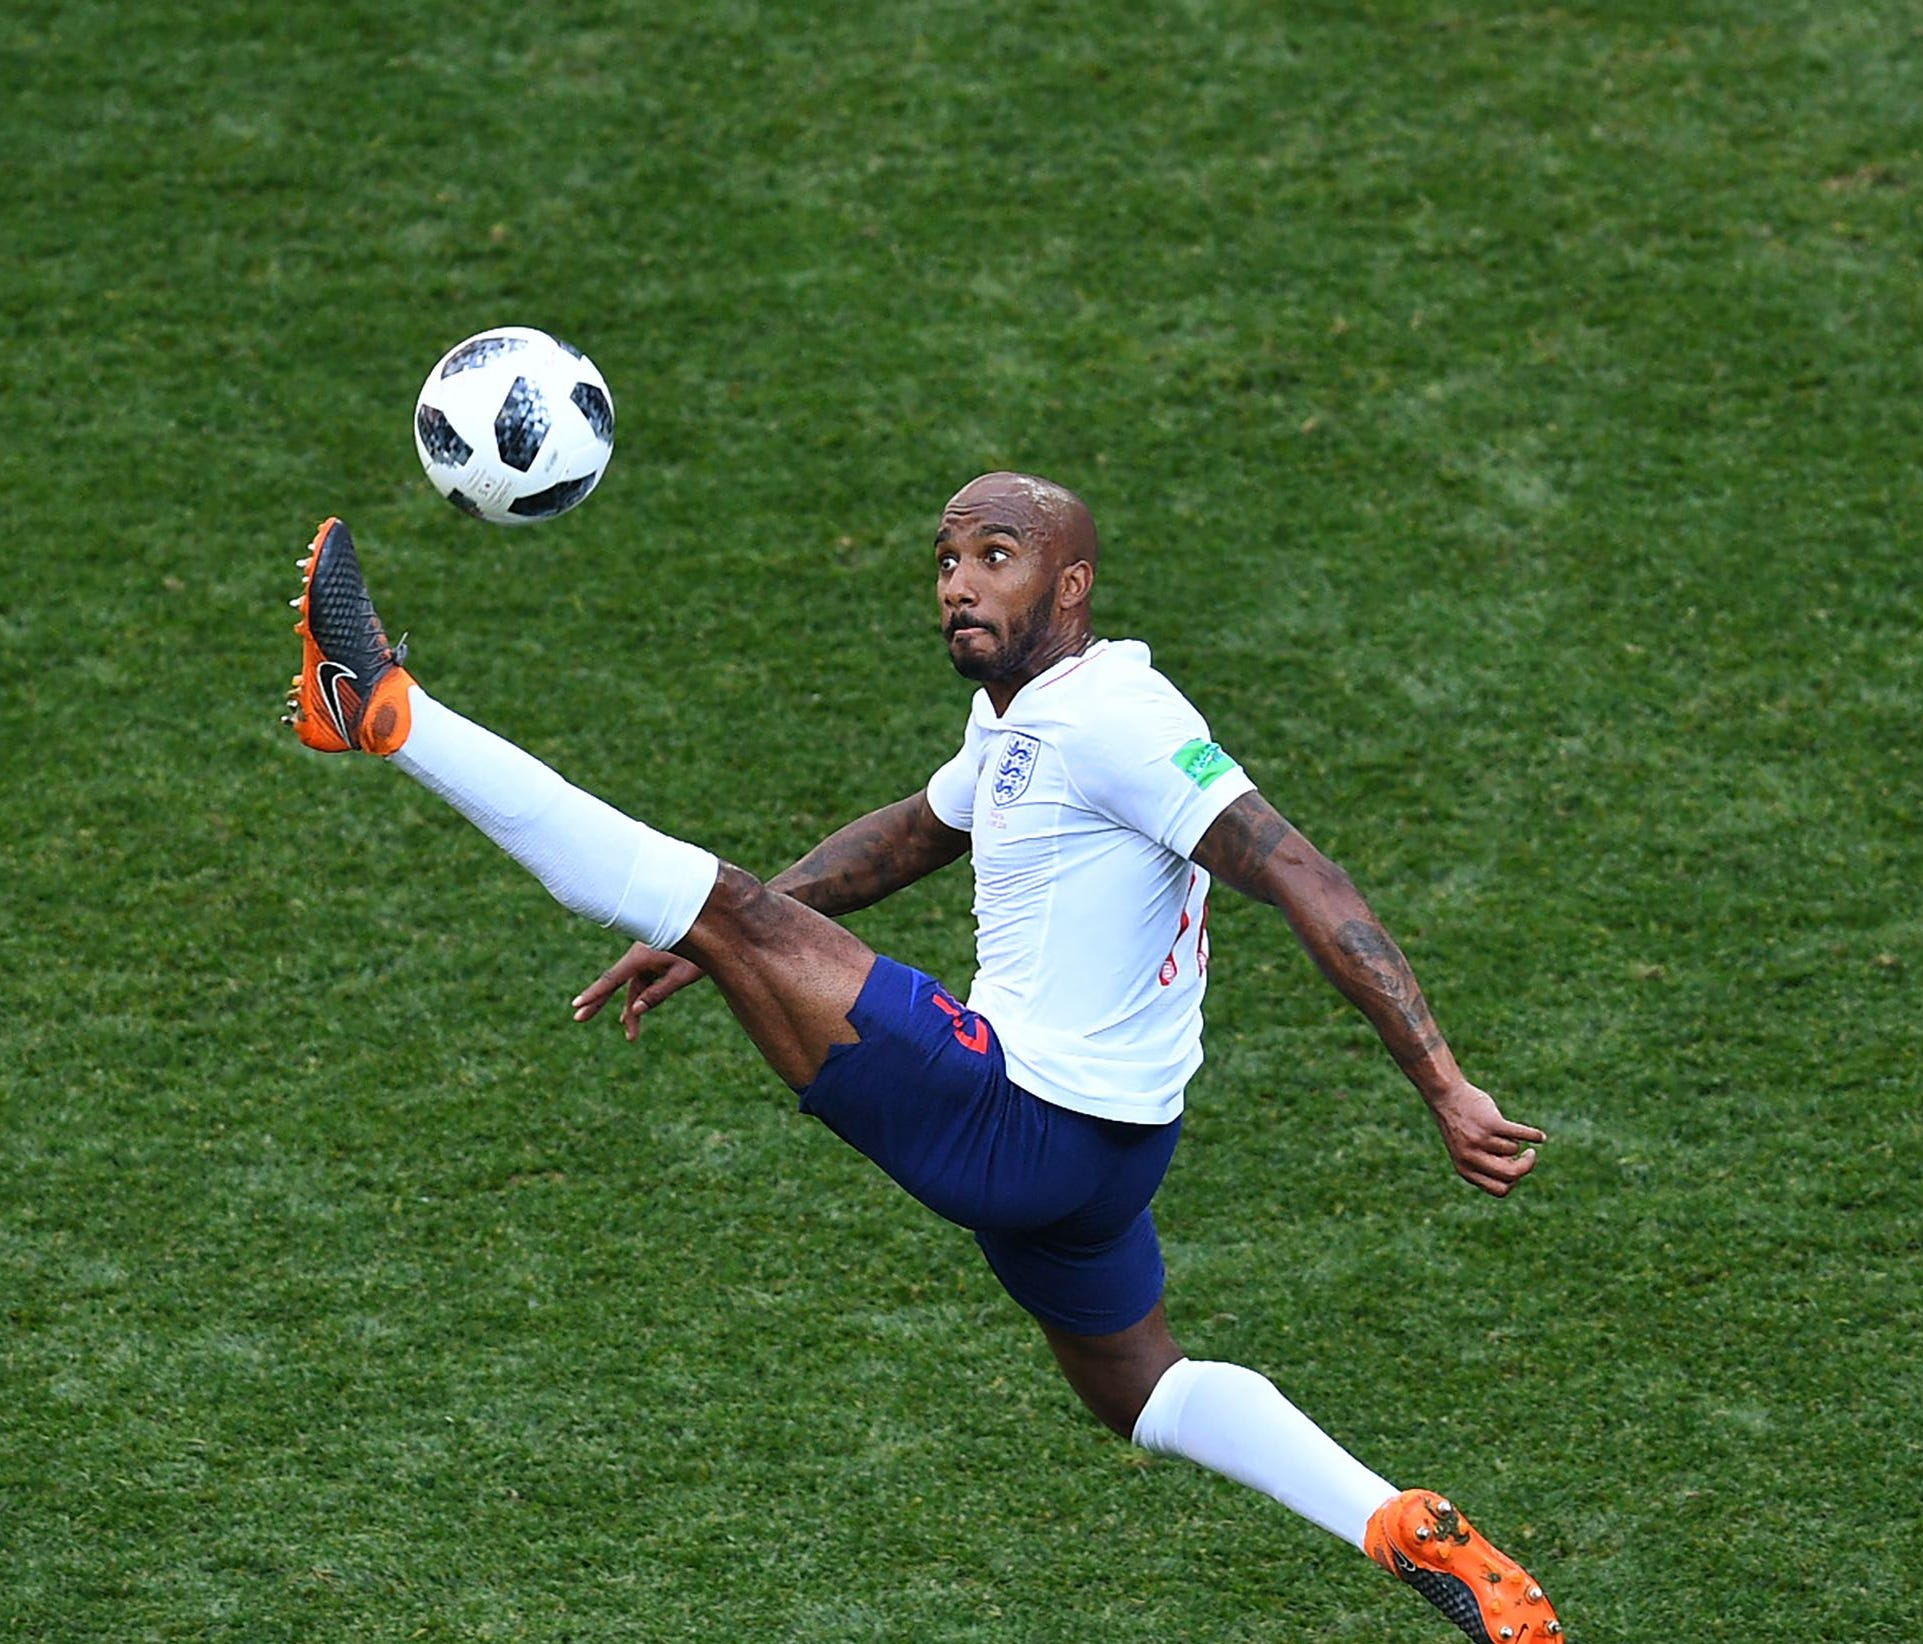 England's Fabian Delph controls the ball against Panama.